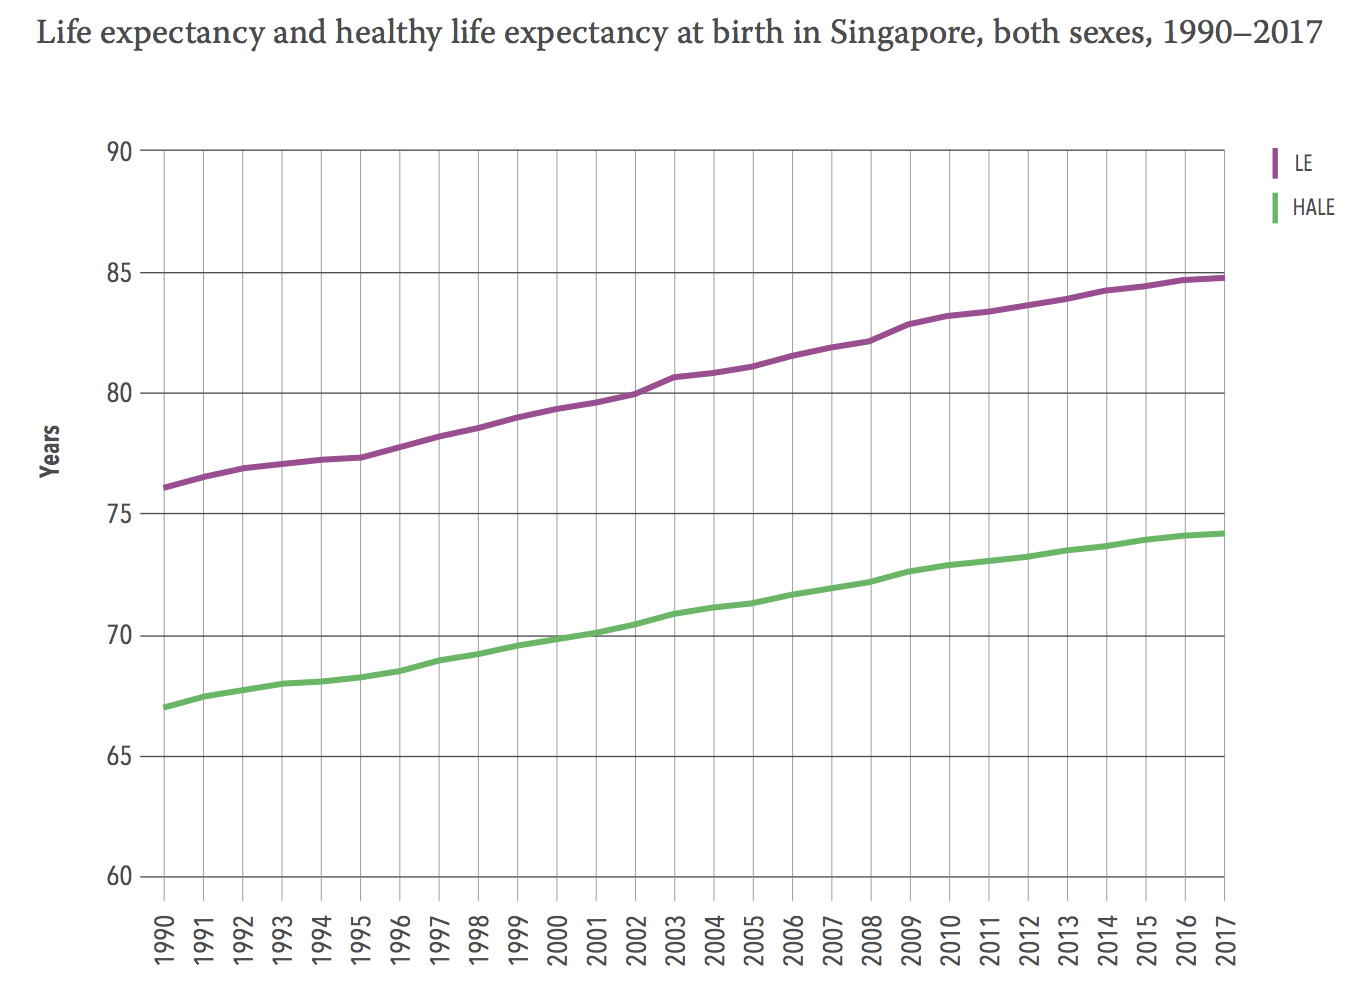 Life expectancy and healthy life expectancy at birth in Singapore, both sexes, 1990–2017